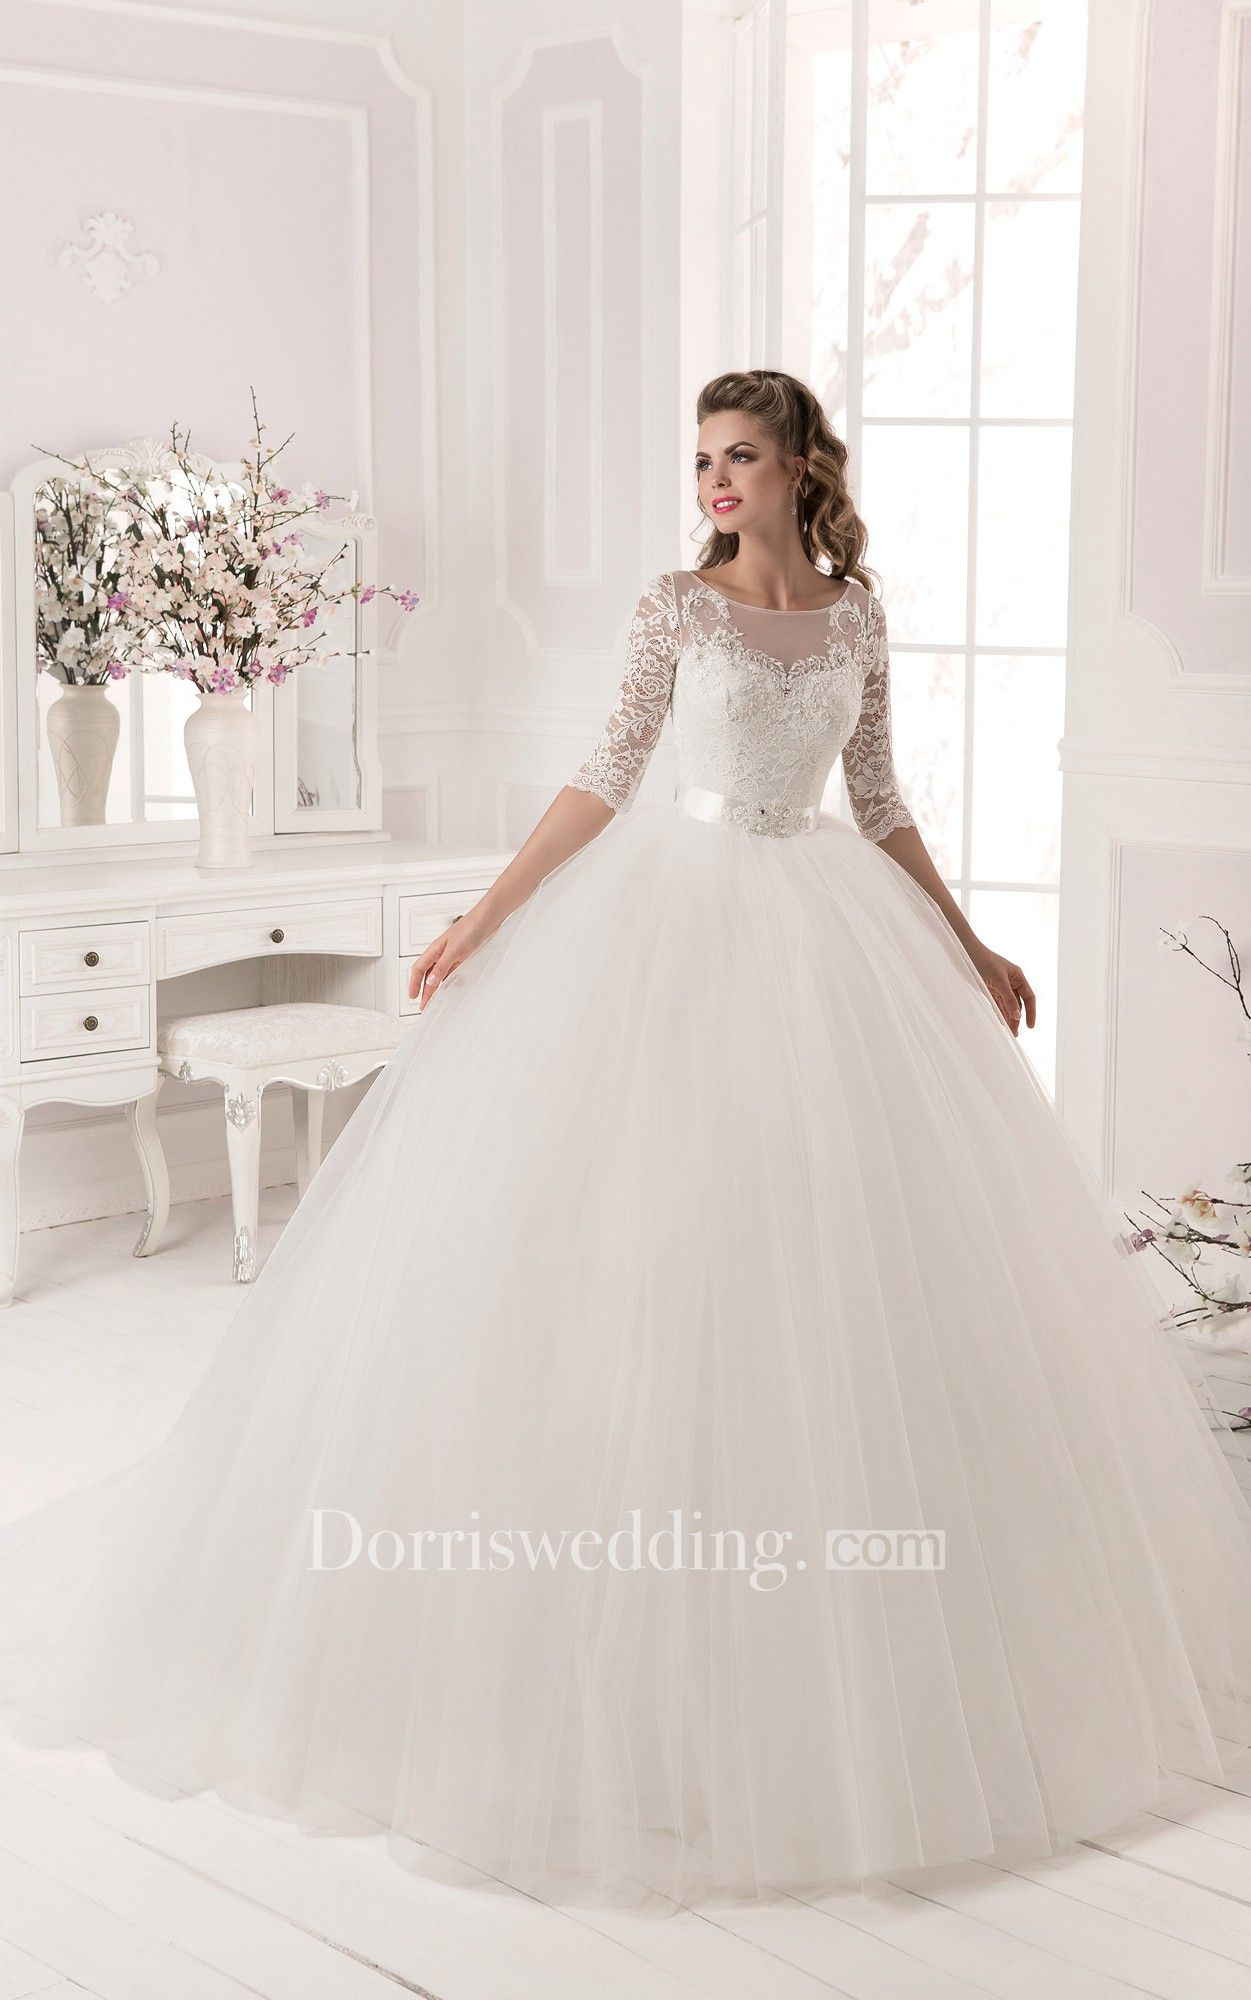 Ball gown wedding dress with sleeves  Ball Gown LaceuTulle Long Sleeve Dress with Crystal Detailing